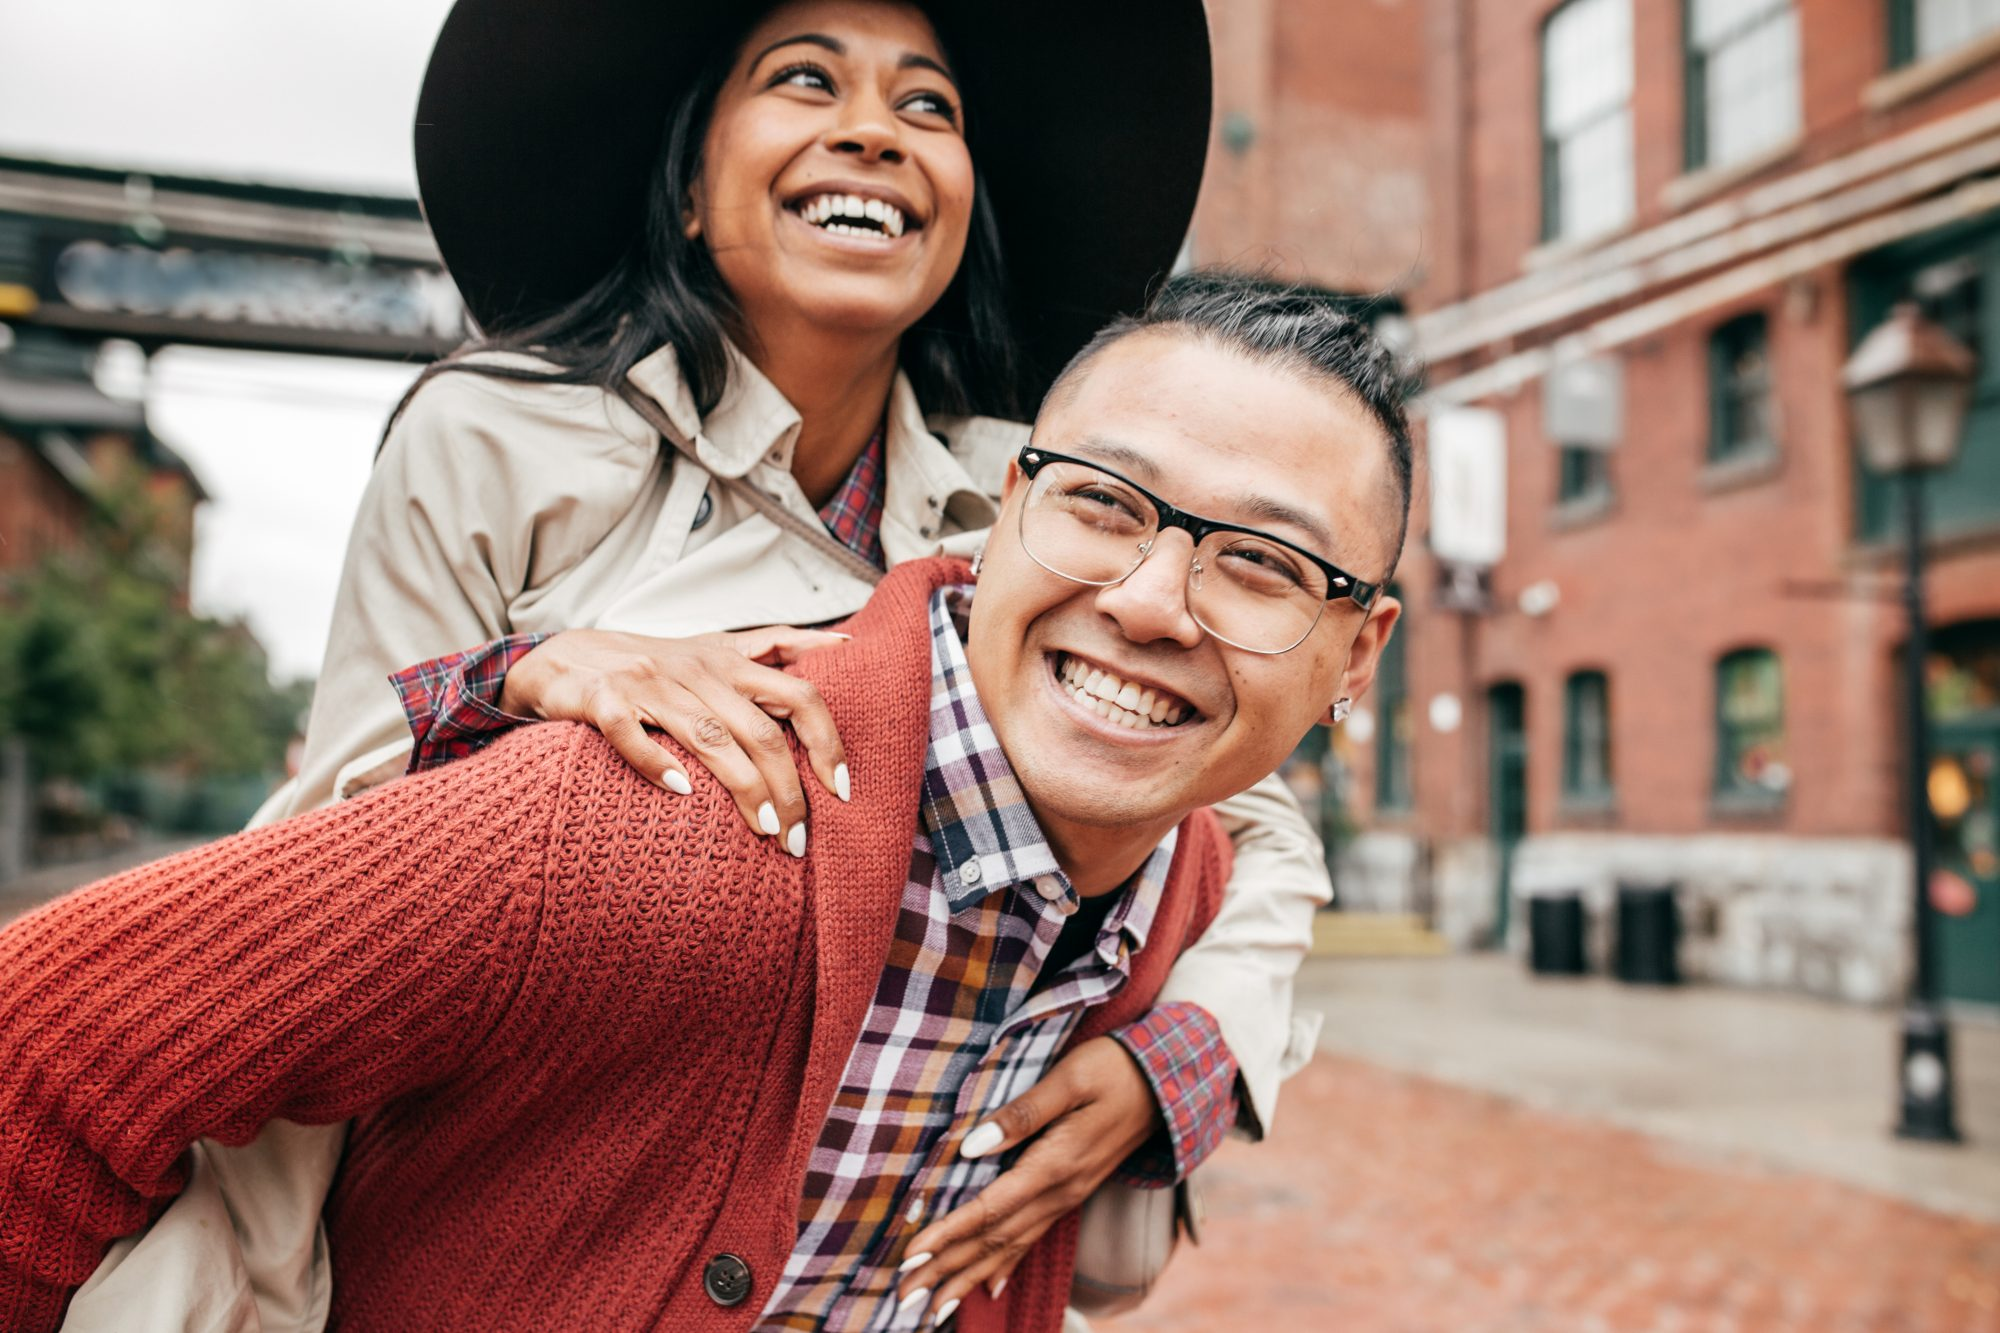 6 Little Ways to Strengthen Your Relationship, According to an Expert